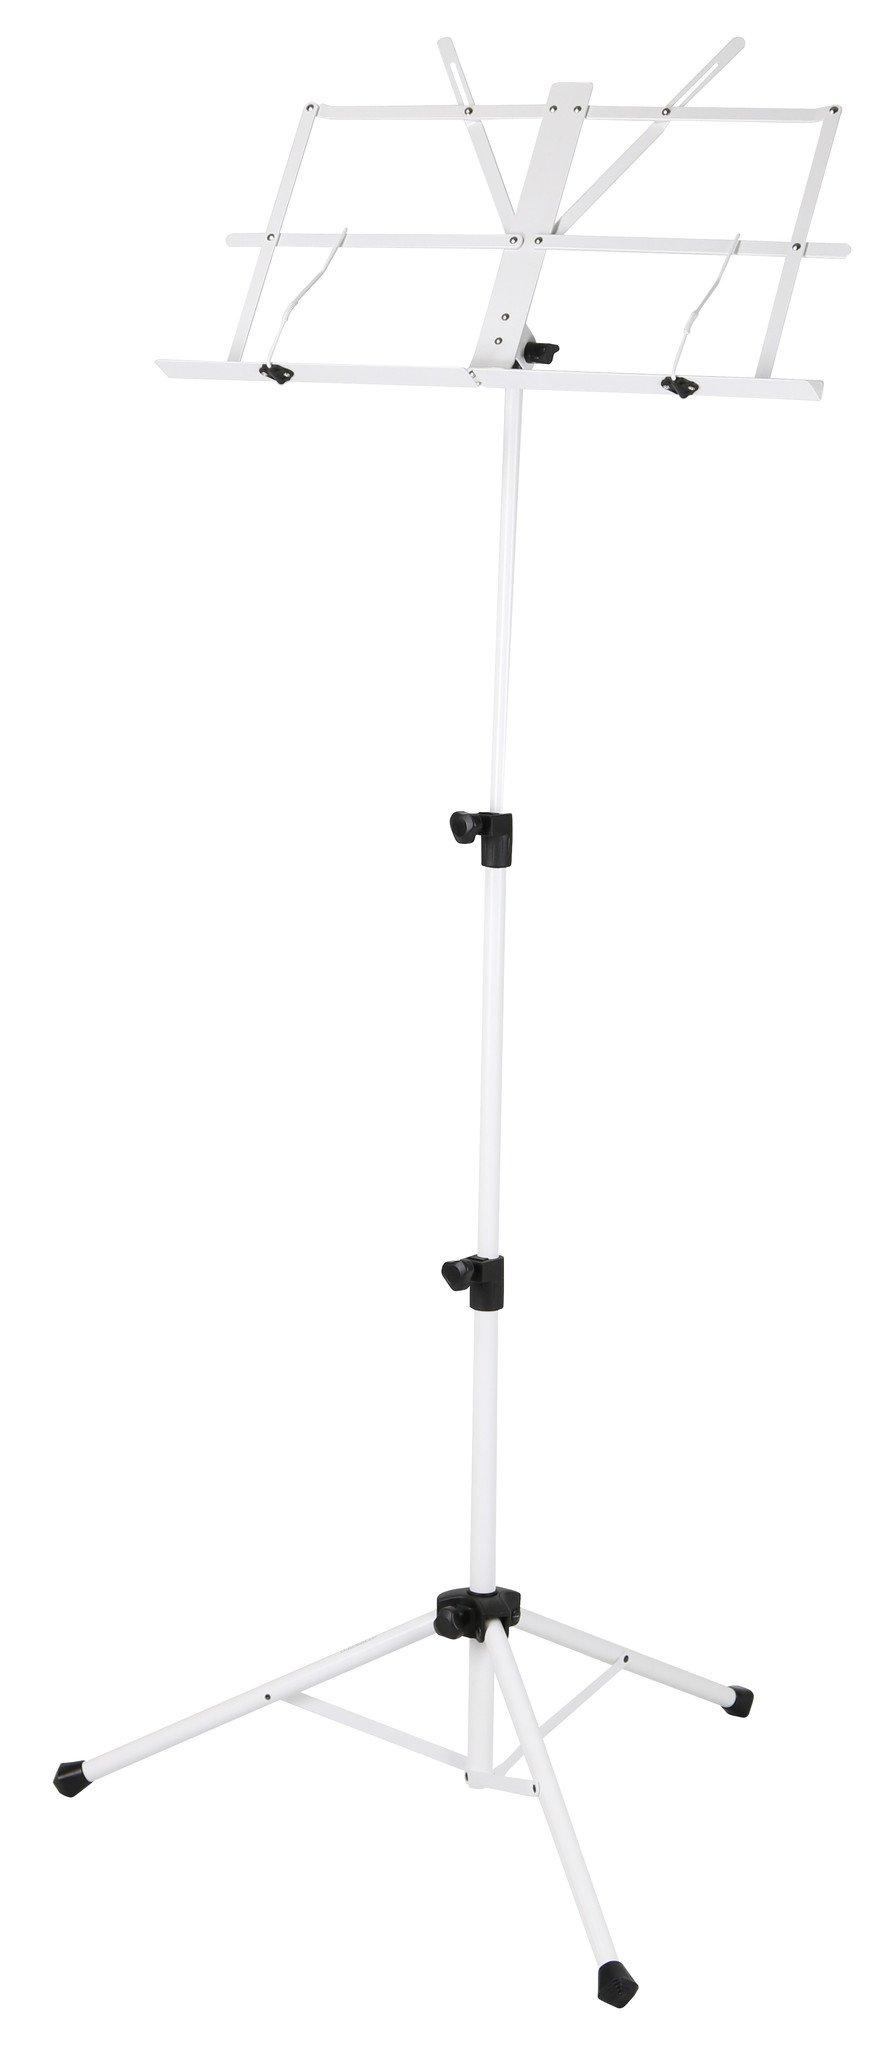 Deluxe 3-Part Folding Music Stand W/Bag - White